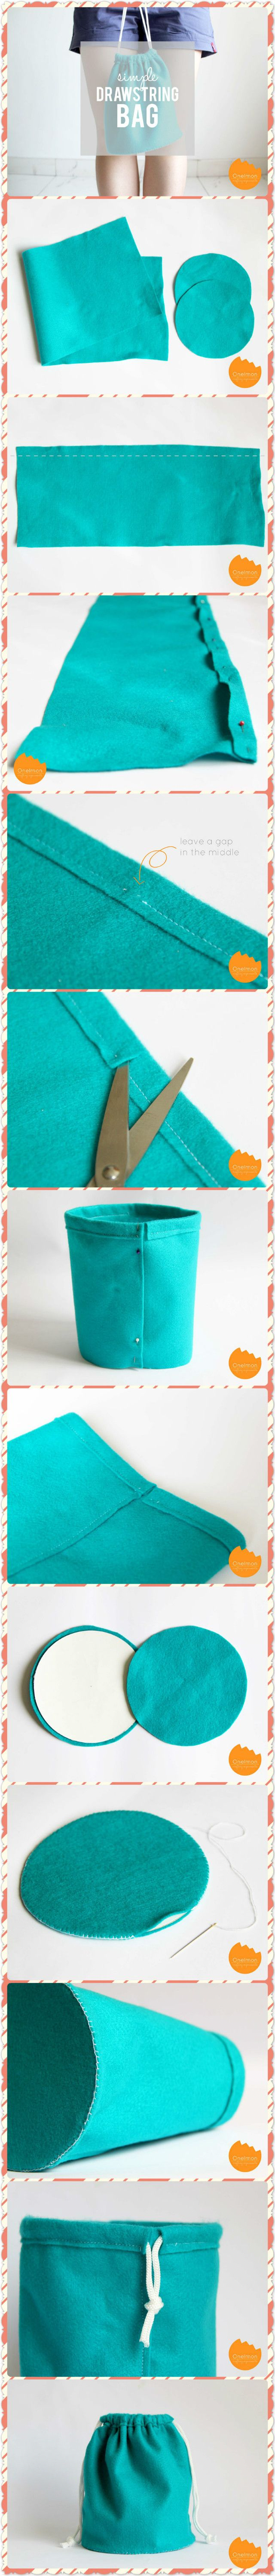 Simply Sewn Drawstring Bag with One. #craft ideas #DIY Click www.welikecraft.com for more craft ideas!